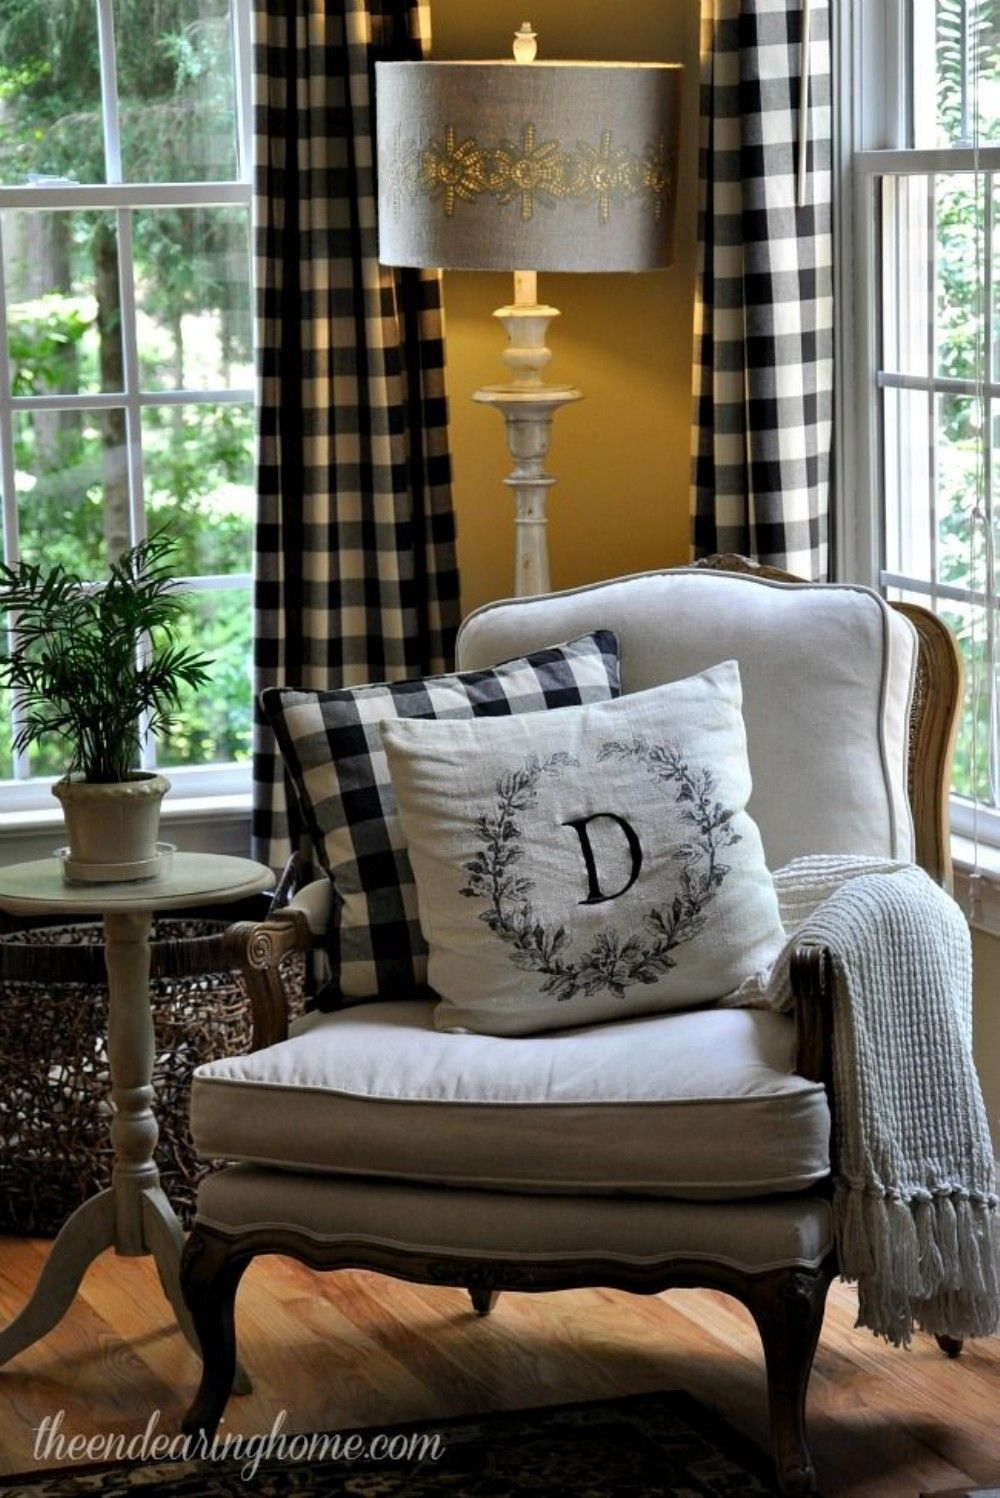 Breathtaking 45 French Country Living Room Design Ideas  Https://cooarchitecture.com/2017/04/06/45 French Country Living Room Design  Ideas/